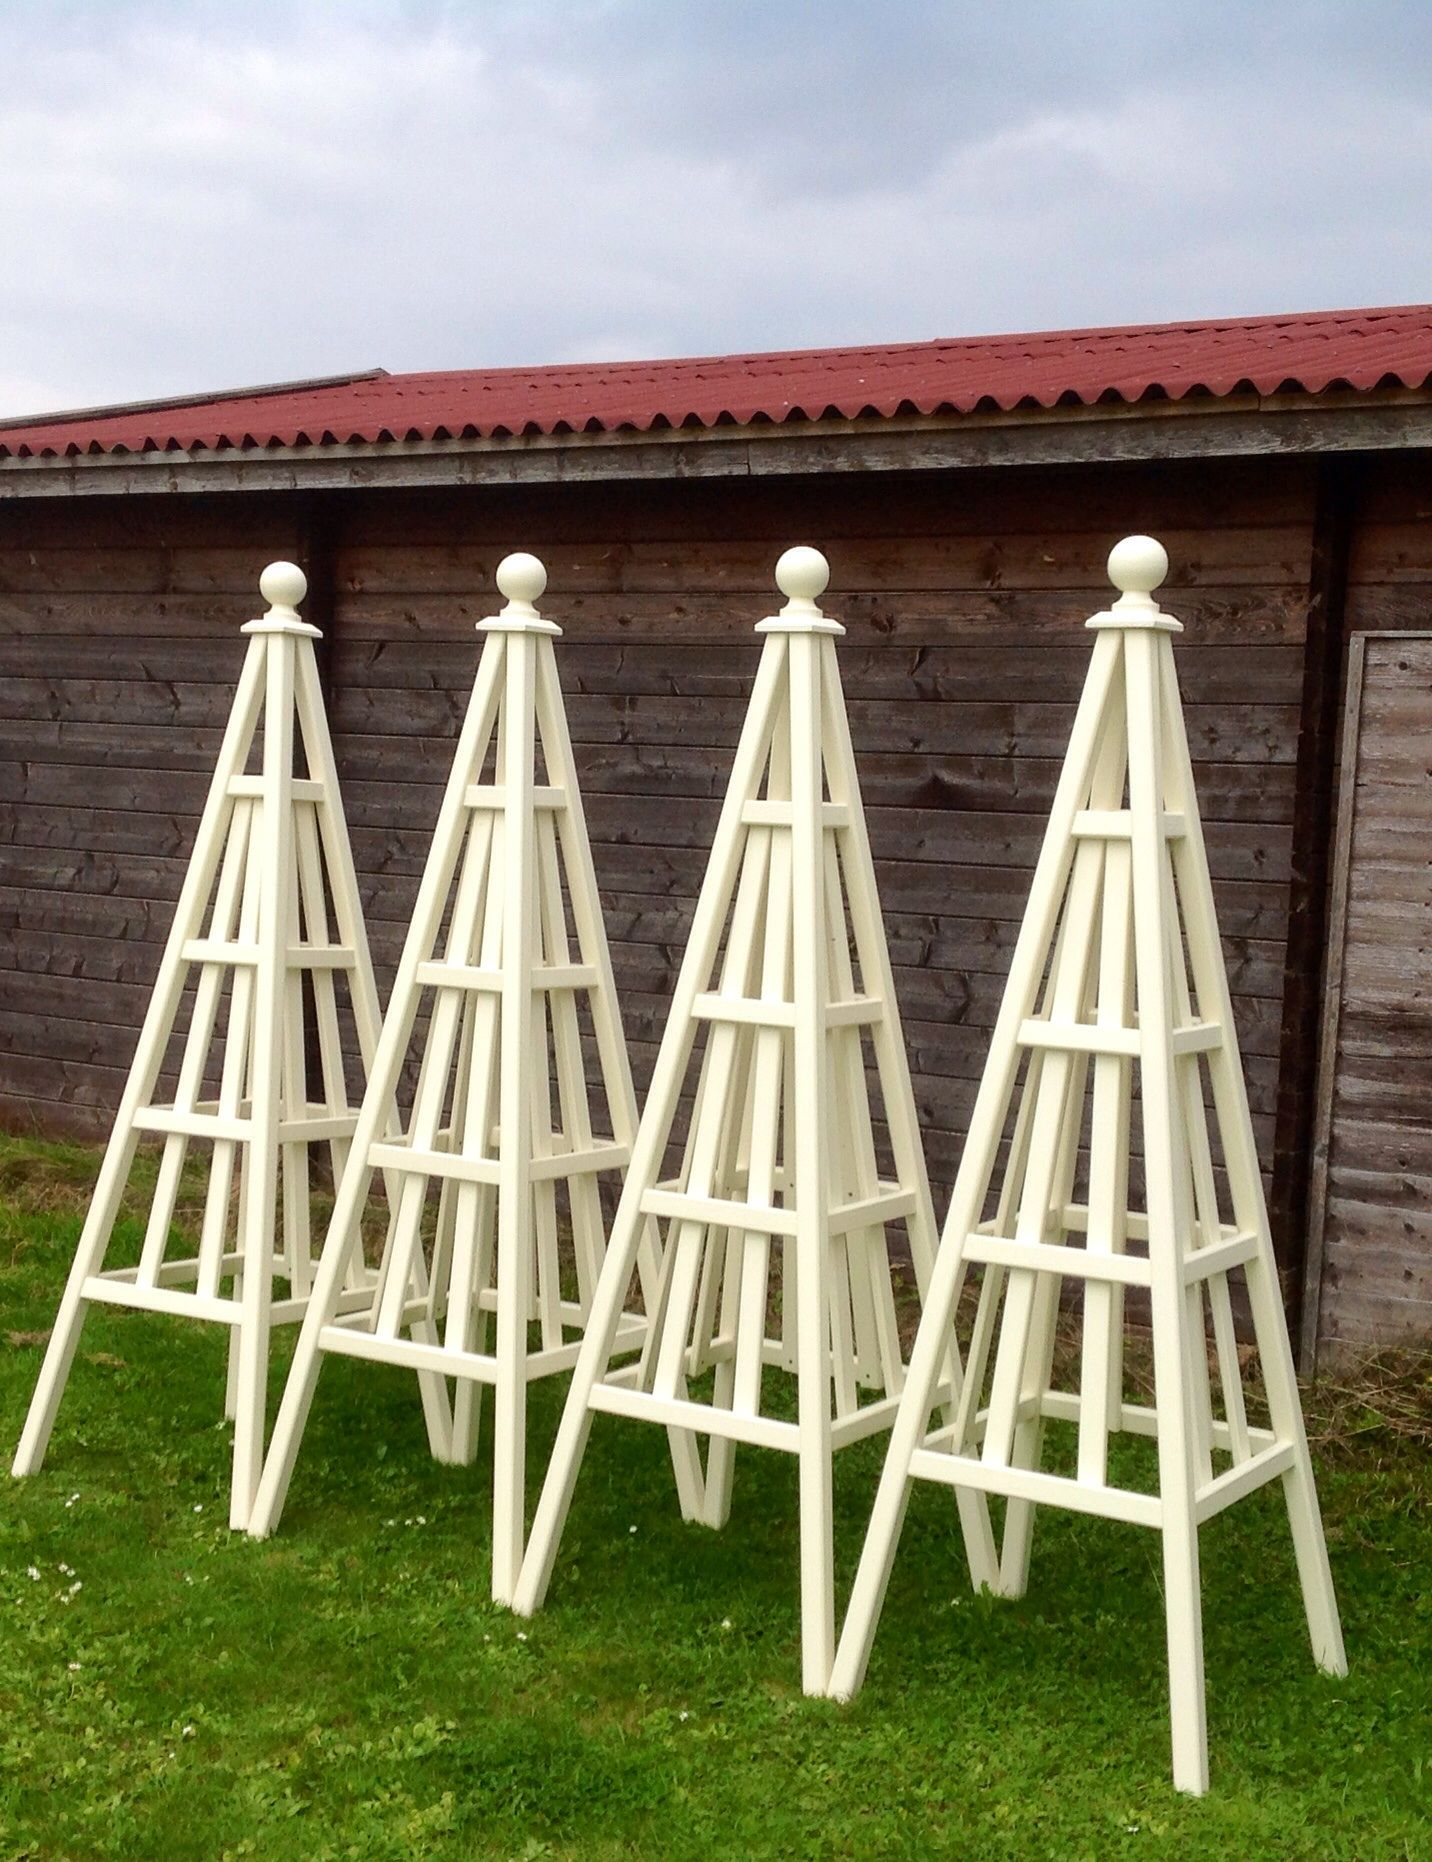 Painted Trellis Ideas Part - 39: 4 Sweet Pea Design Wooden Garden Obelisks Painted U0027New Whiteu0027 From Farrow U0026  Ball